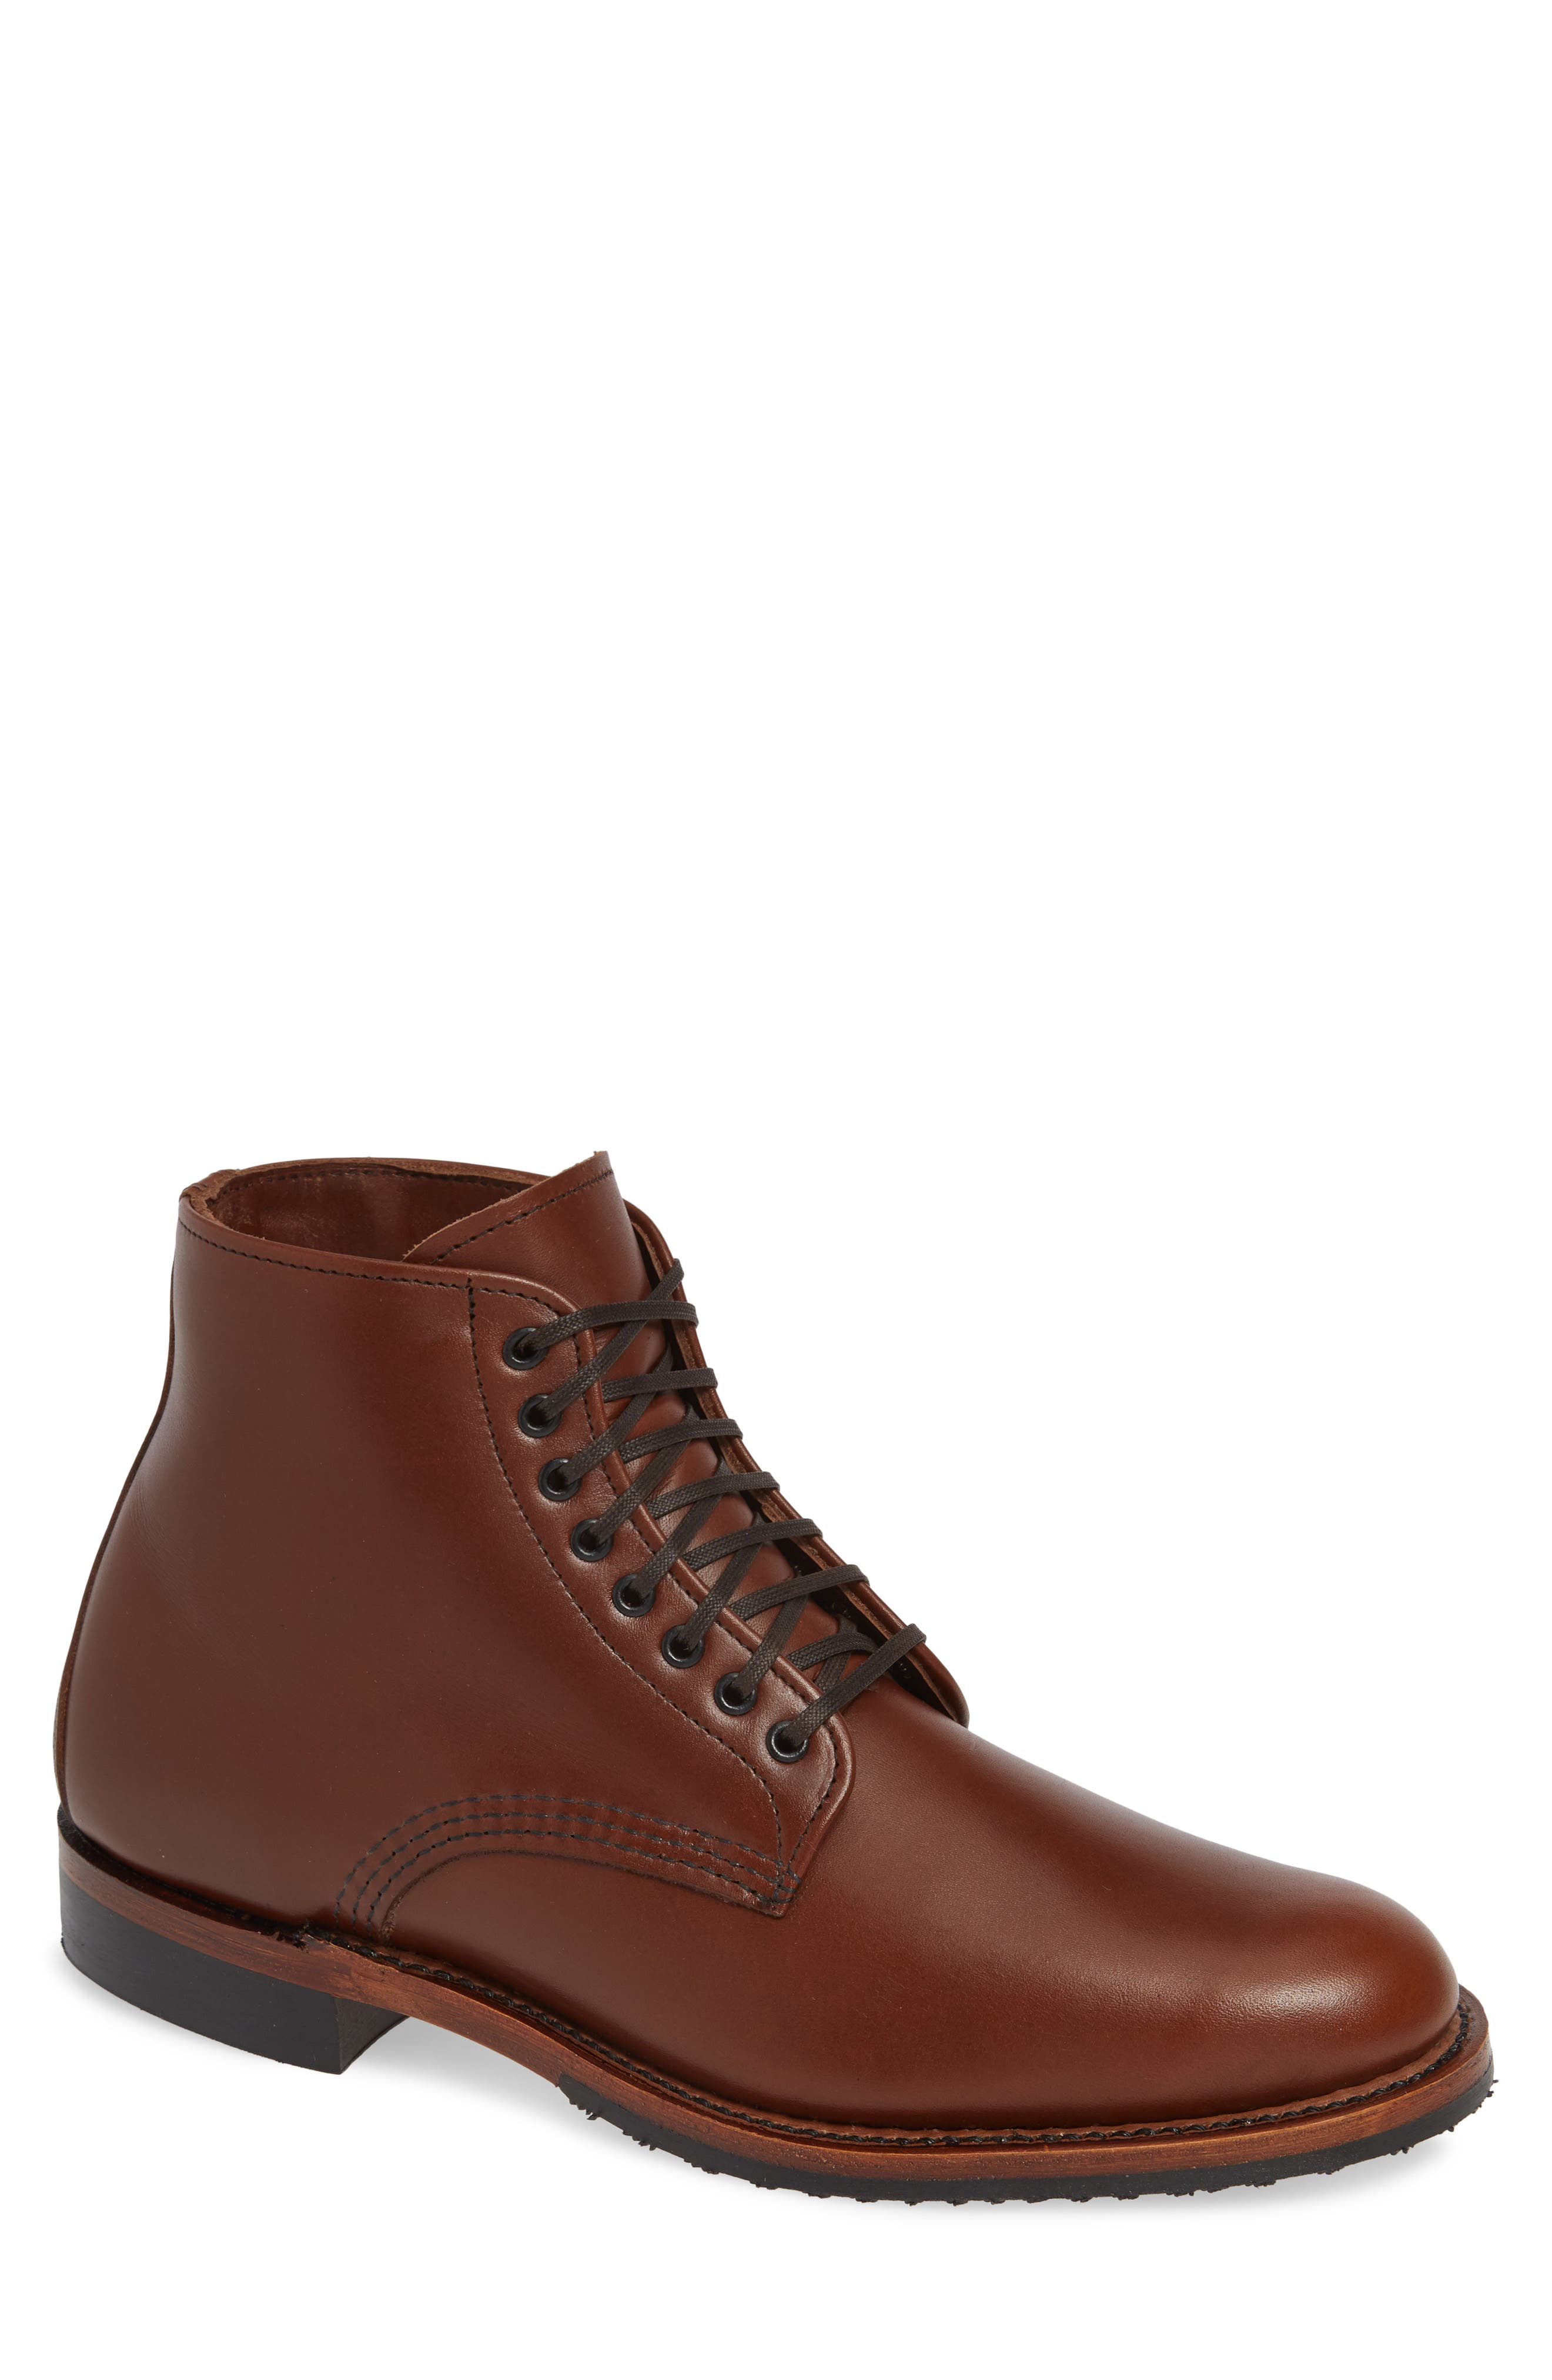 Red Wing Williston Plain Toe Boot, Brown